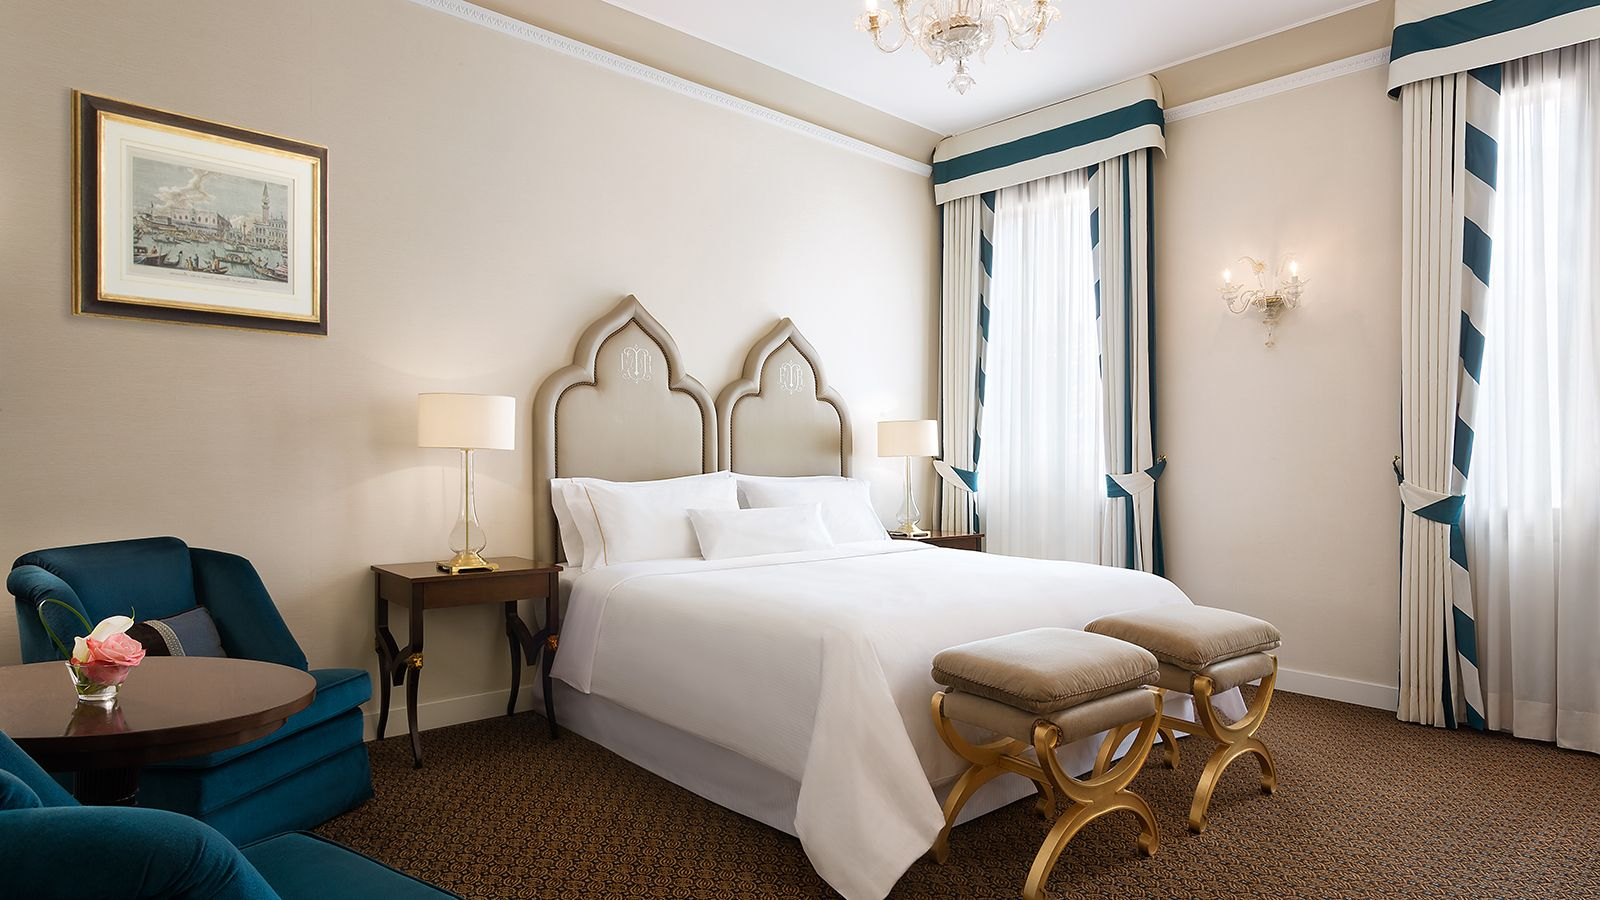 Image of the Grand Deluxe Room at The Westin Europa & Regina, Venice